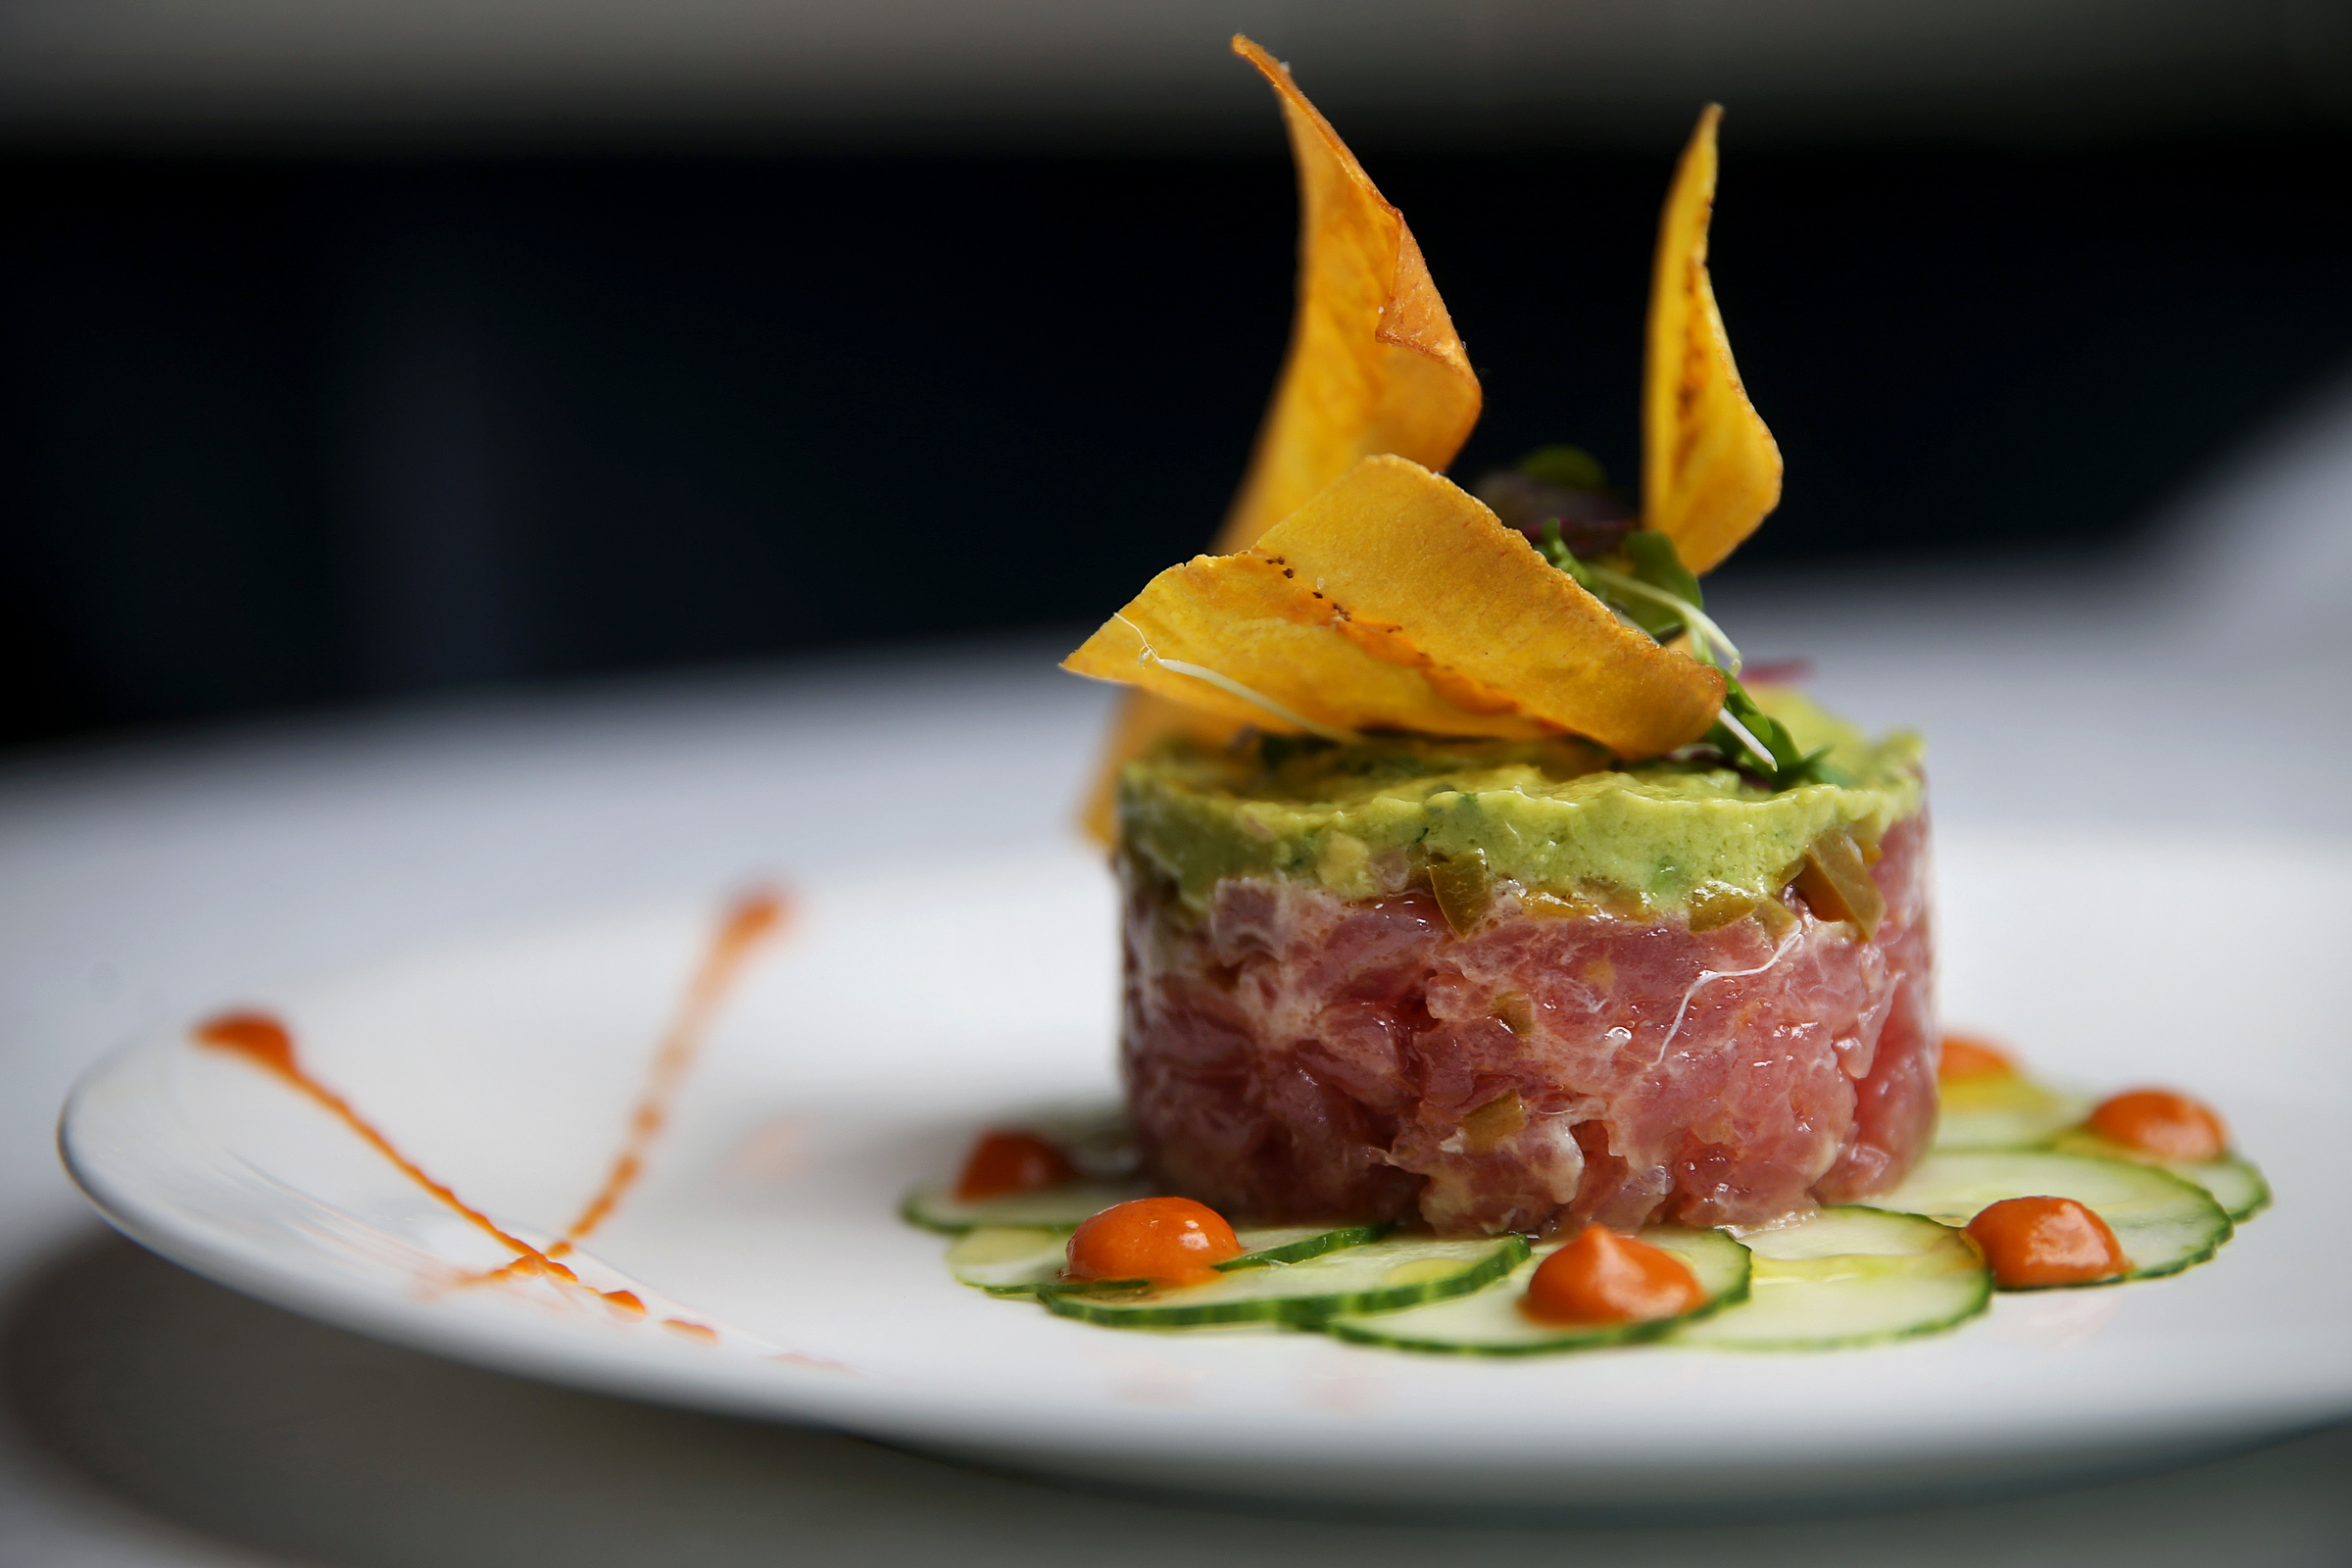 The tuna tartare is pictured at Dolce Mare inside the Ocean Resort Casino in Atlantic City, N.J., on Monday, July 2, 2018. TIM TAI / Staff Photographer